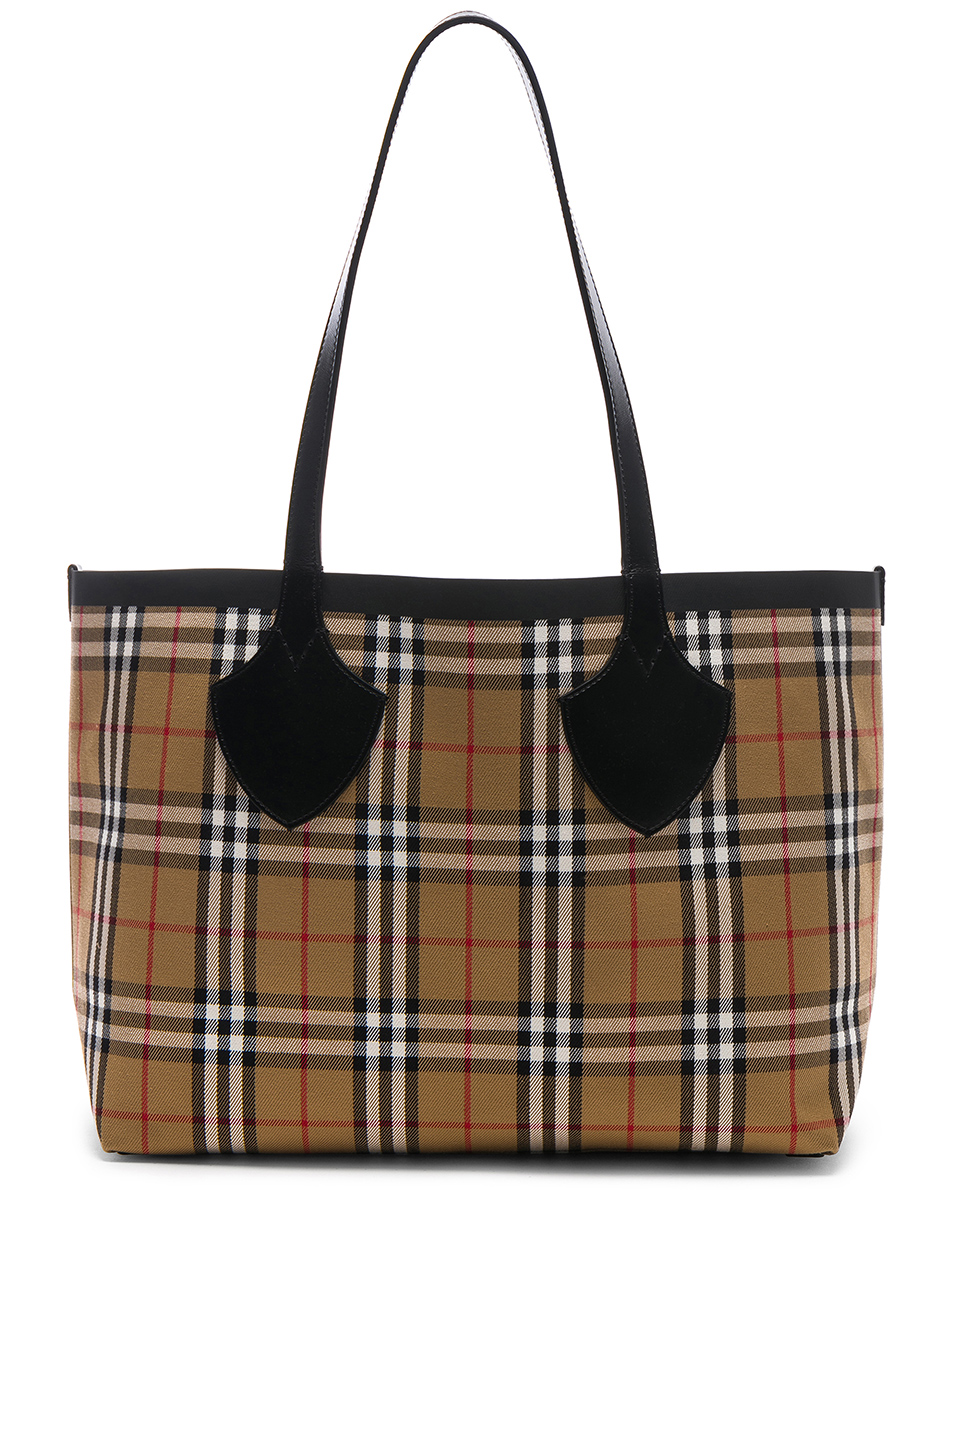 42c51b7999 Buy Original Burberry Reversible Vintage Check Tote at Indonesia ...